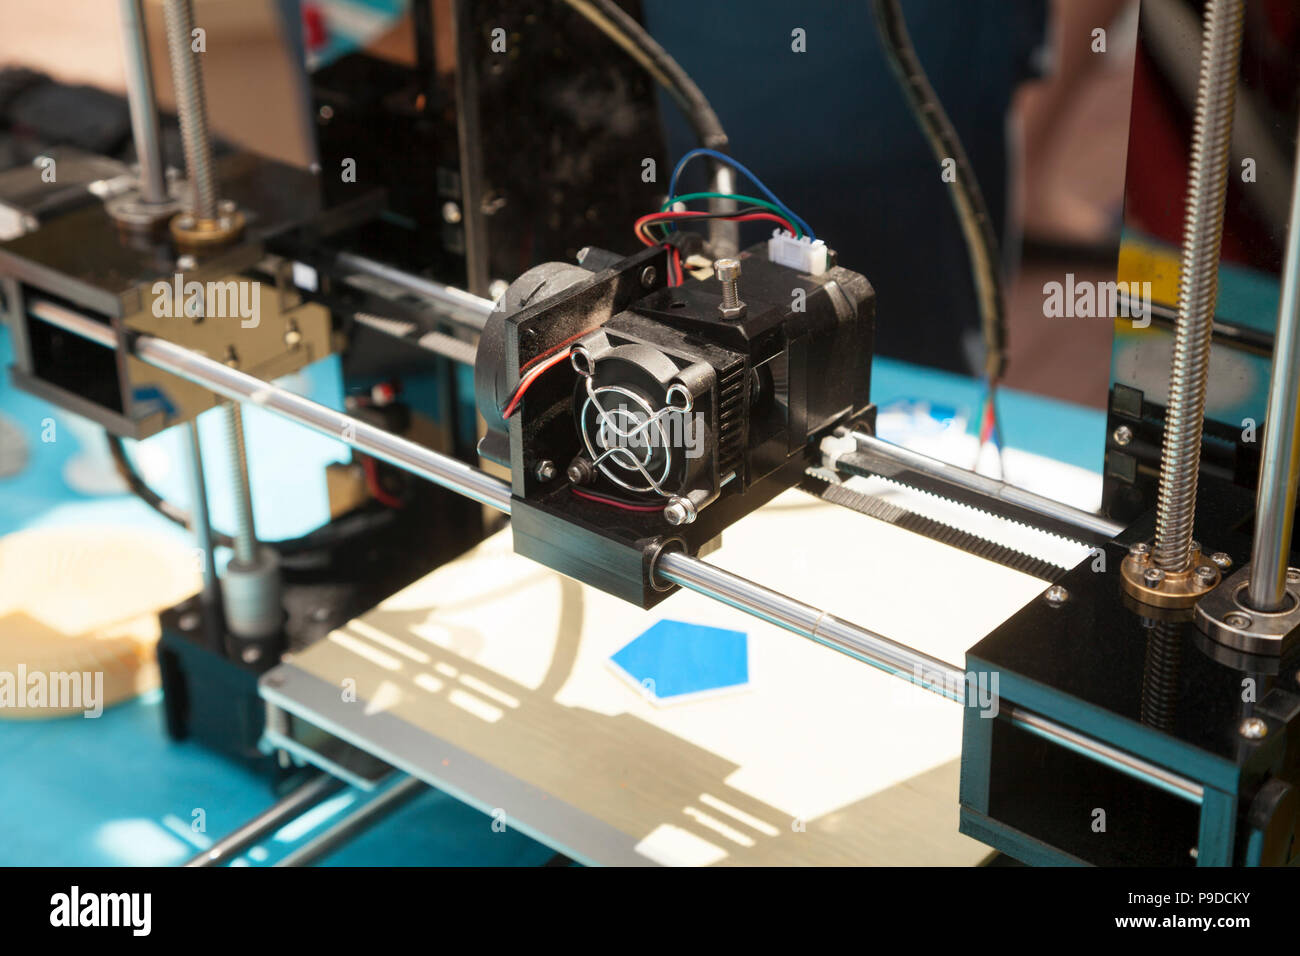 3d printer creating a new plastic object close up. 3